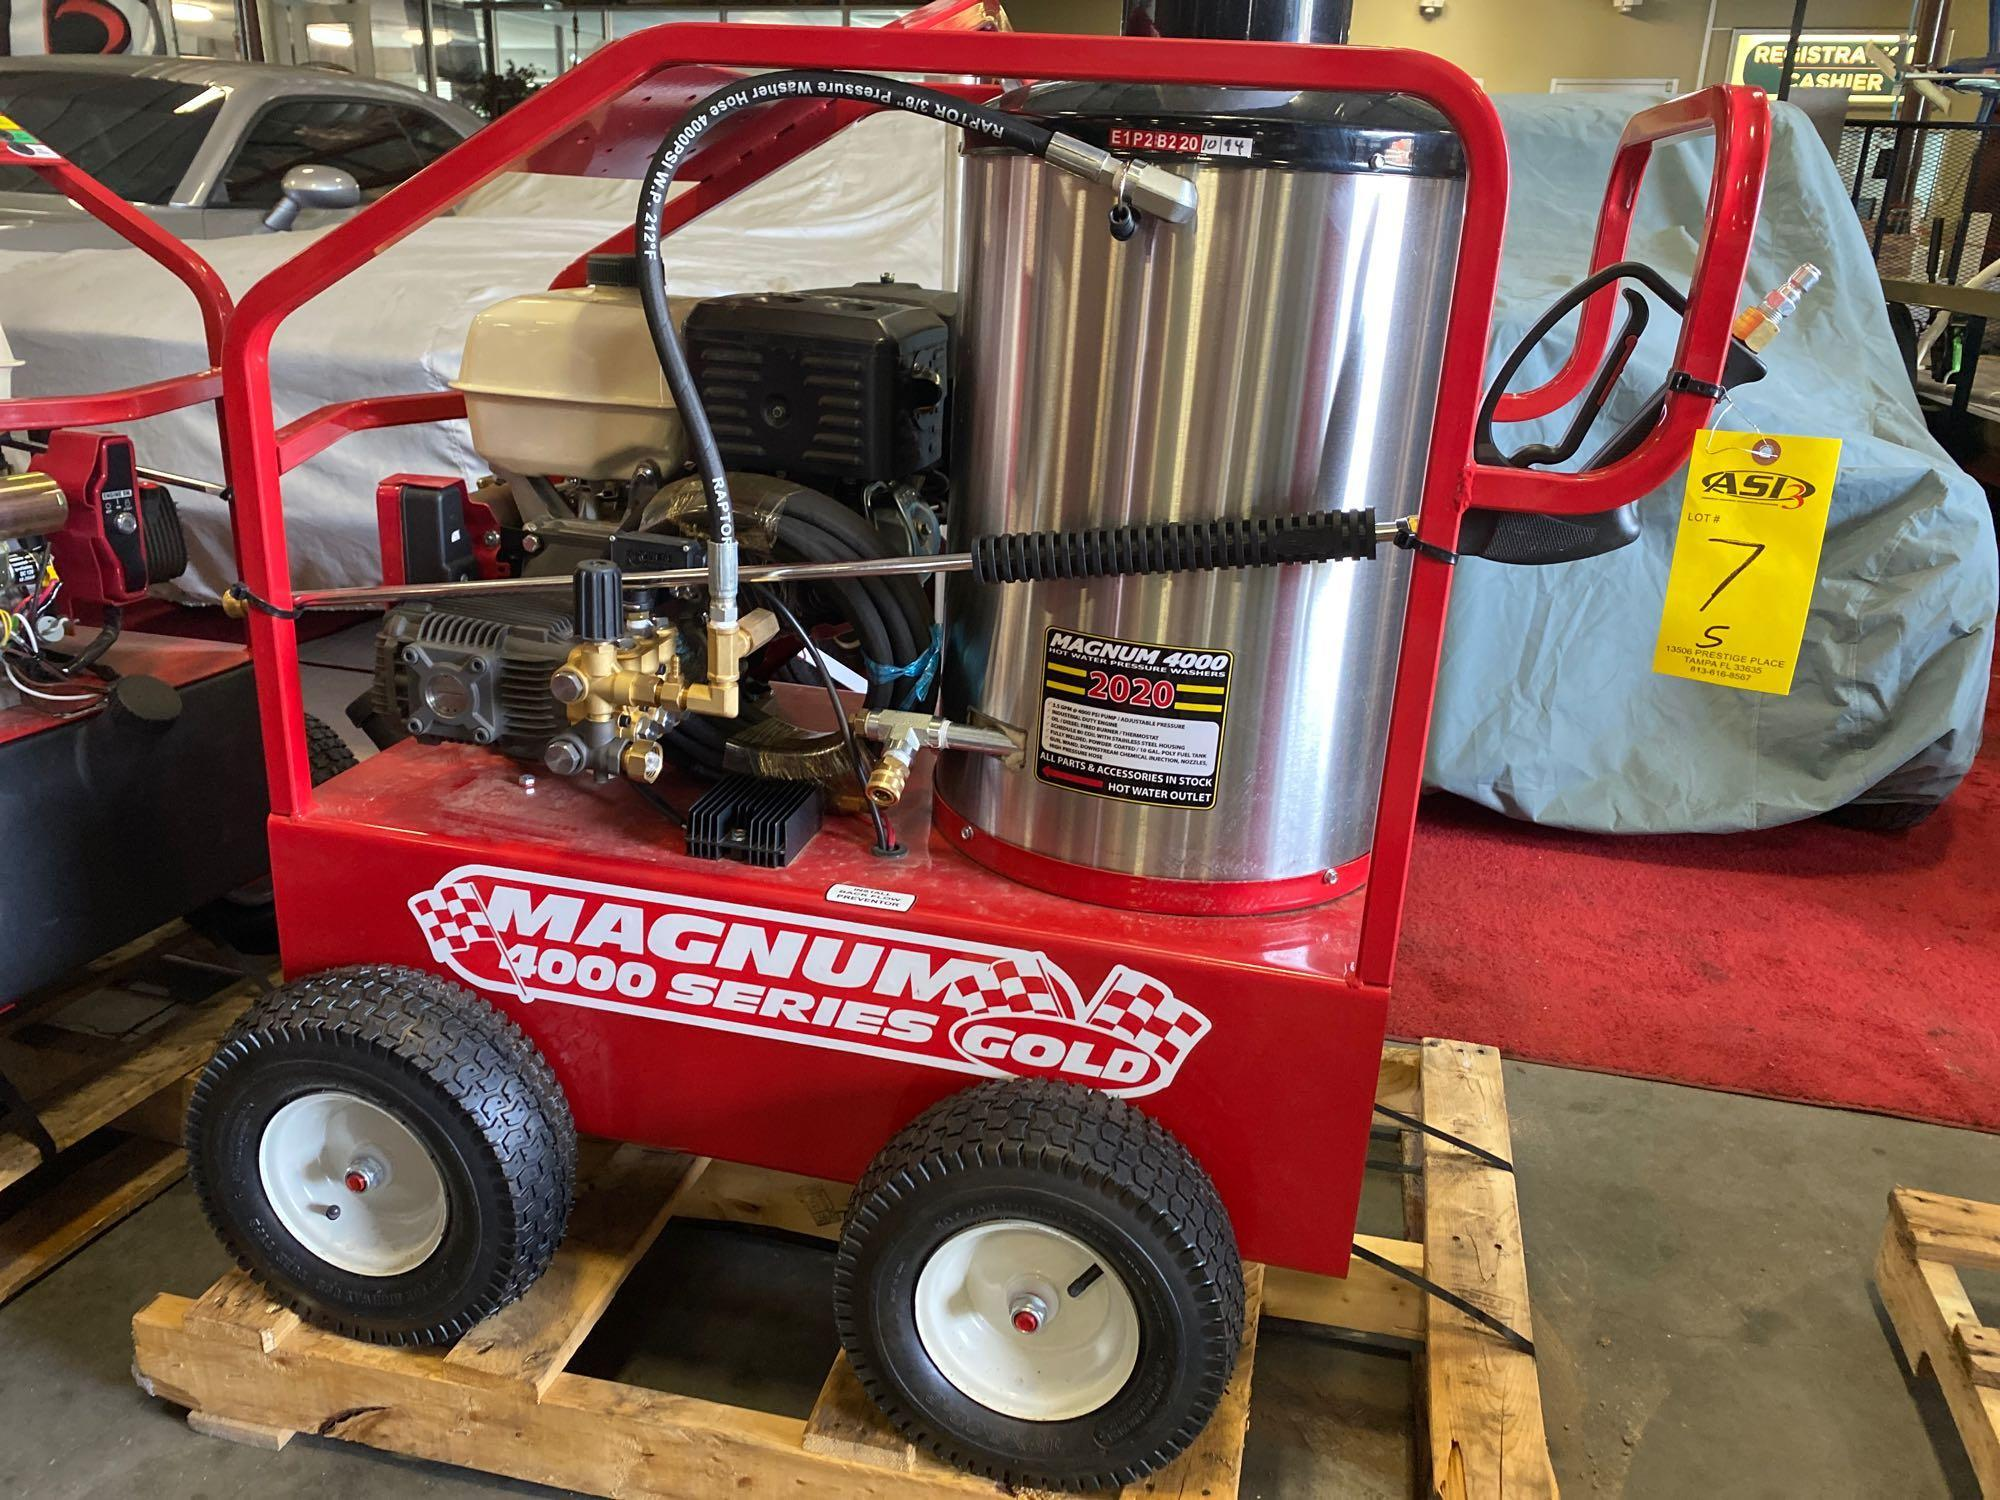 NEW/UNUSED 2020 MAGNUM 4000 HEATED PRESSURE WASHER, ELECTRIC START - Image 2 of 5